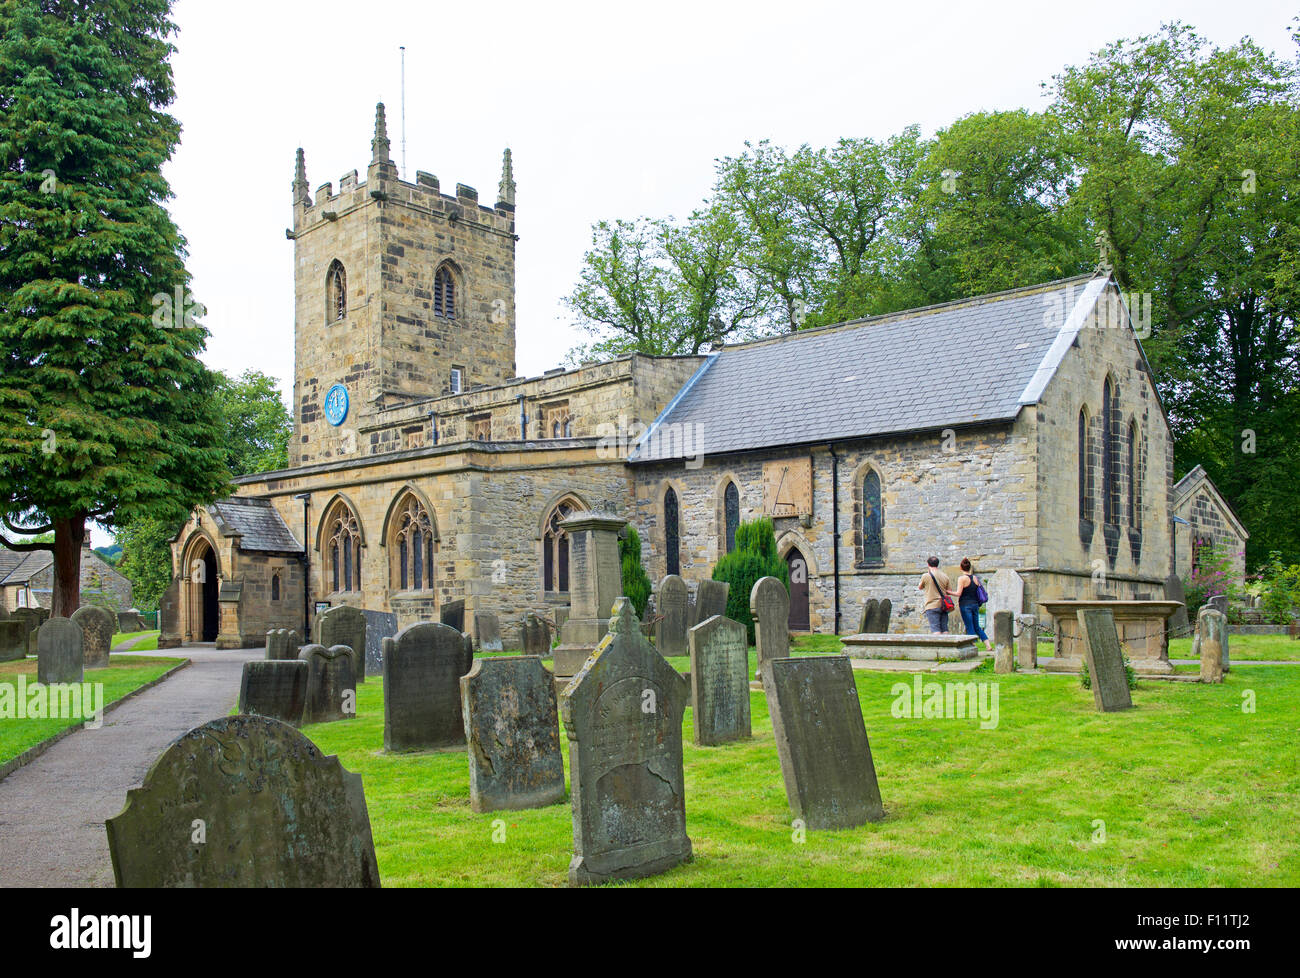 St Lawrence's Church, in the village of Eyam, Peak National Park, Derbyshire, England UK - Stock Image